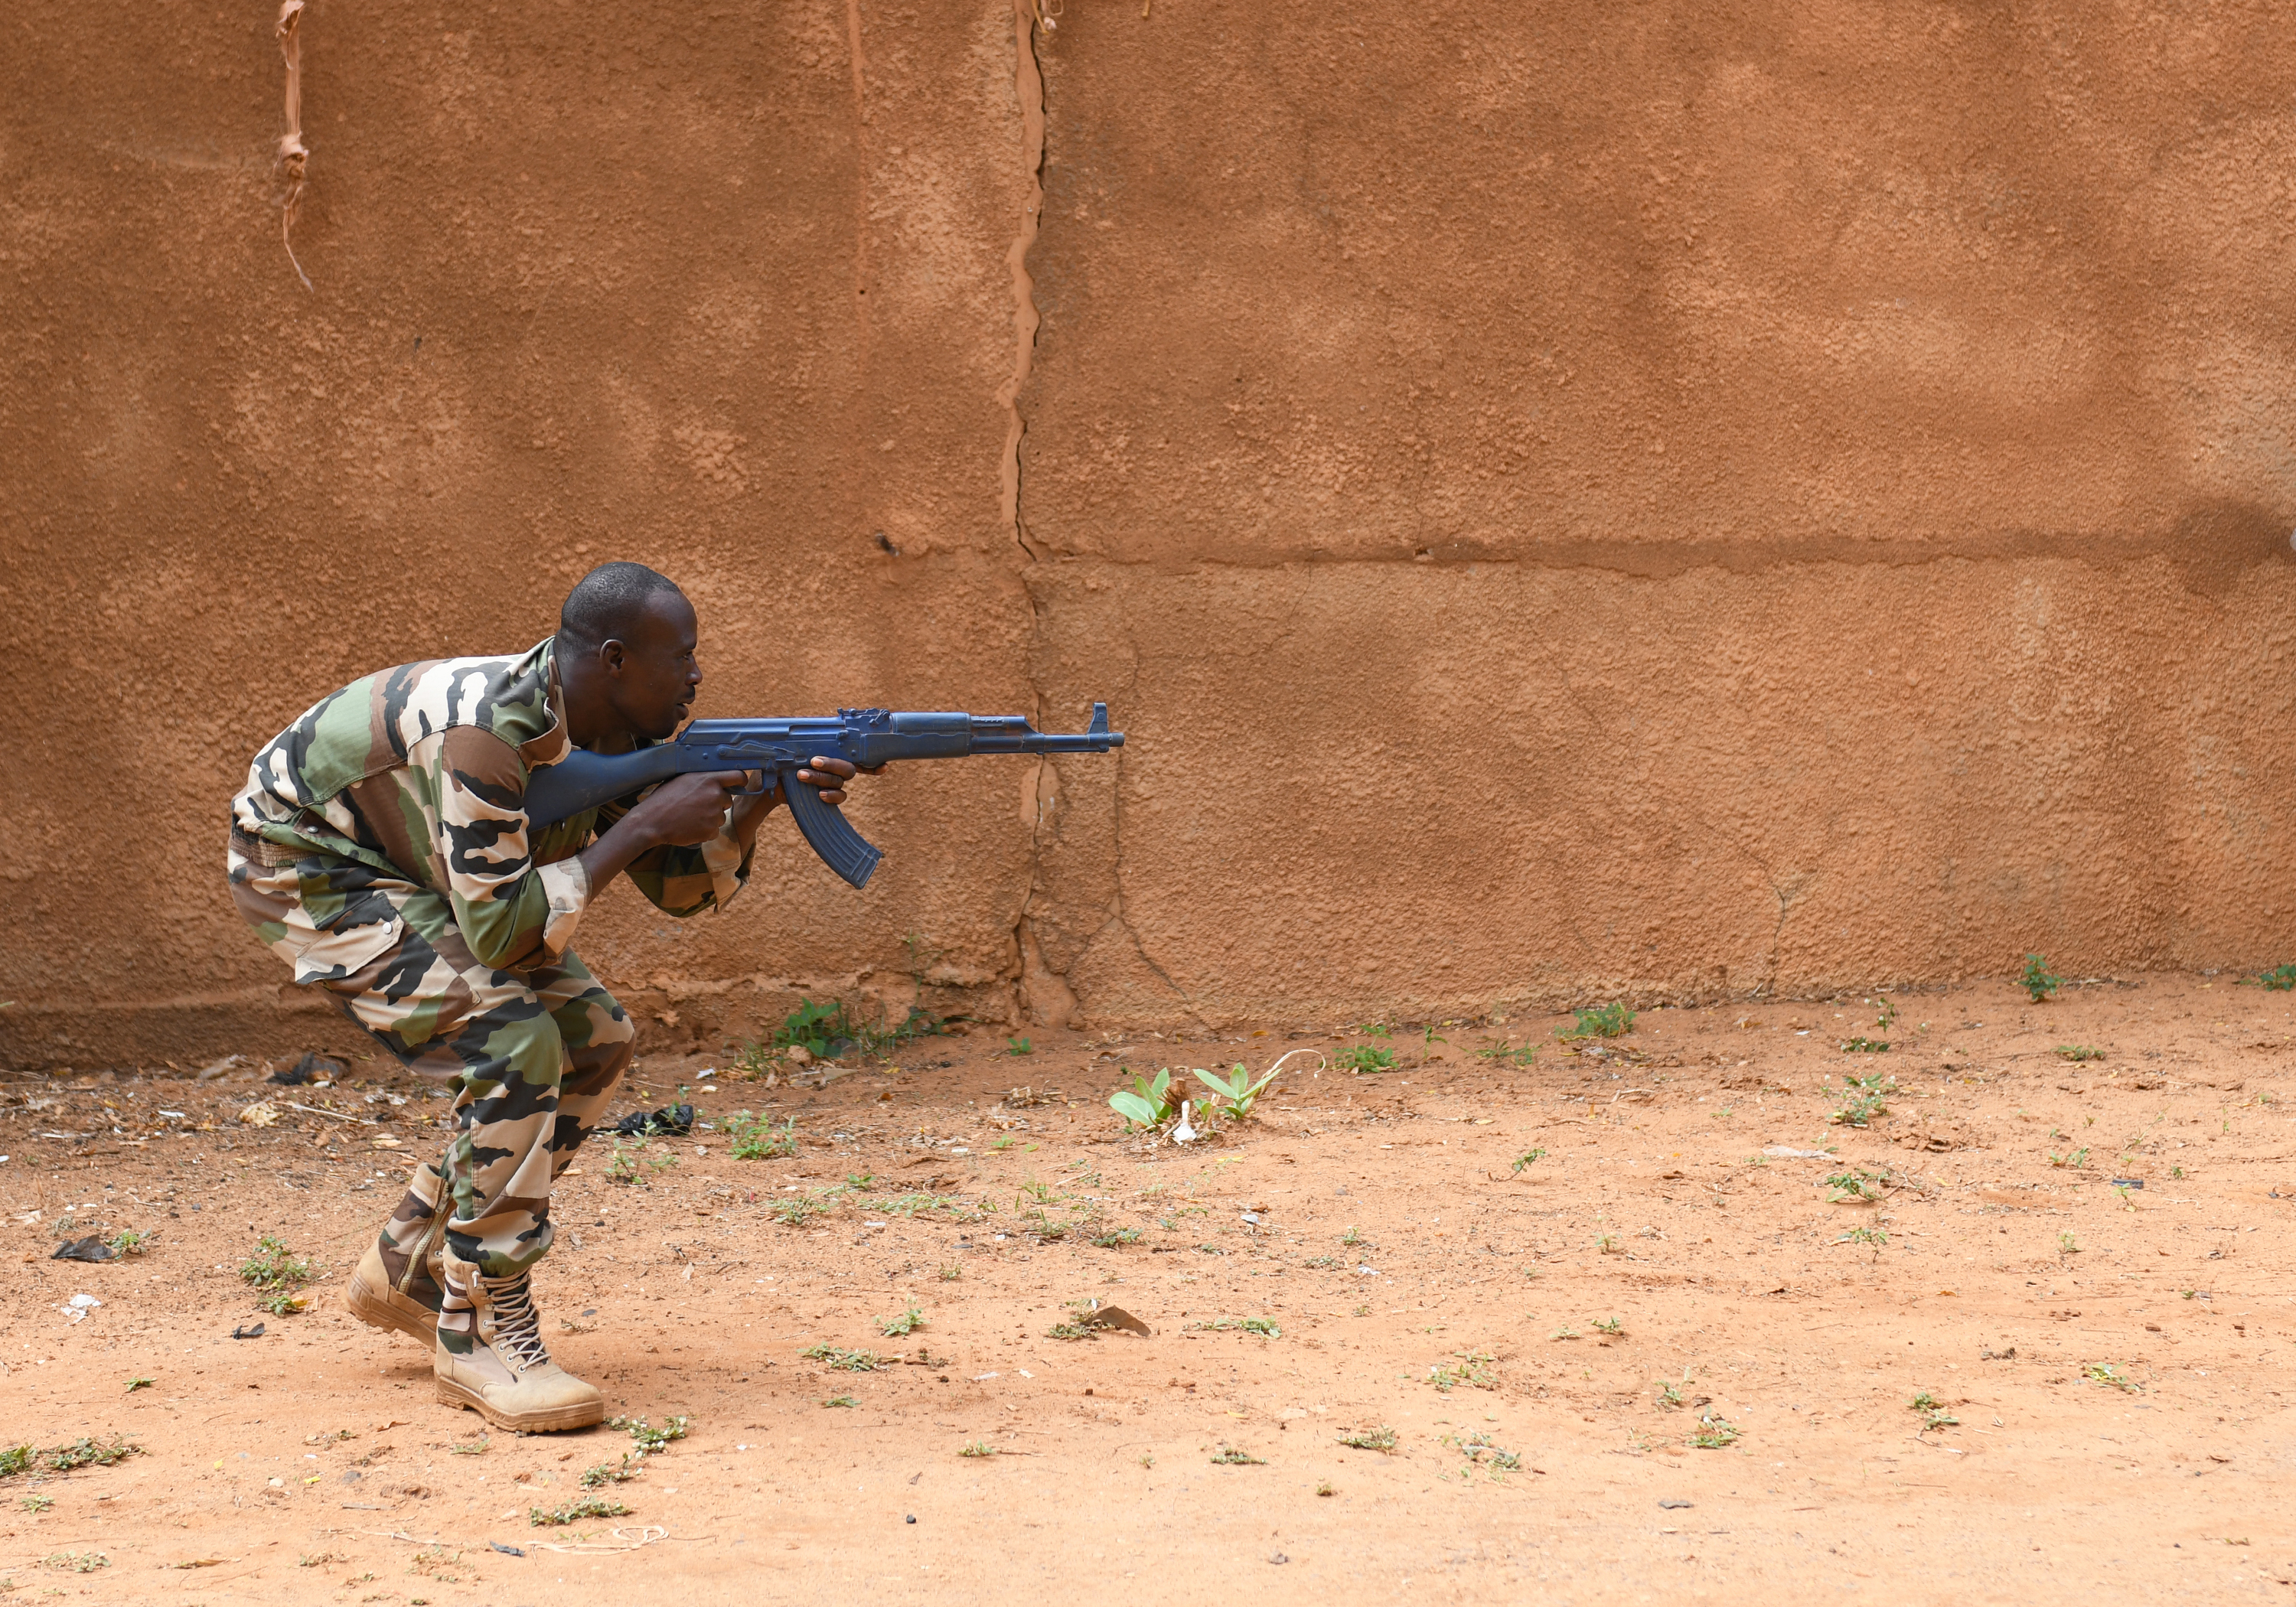 A Forces Armées Nigeriennes (Nigerien Armed Forces) Genie Unit member moves toward a simulated attacker during an Improvised Explosive Device Awareness Course taught by members of the 768th Expeditionary Air Base Squadron Explosive Ordnance Disposal team and Security Forces Air Advisors in Niamey, Niger, Oct. 11, 2019. The course is part of a curriculum spanning several months designed to improve the FAN's effectiveness and survivability once they deploy to combat the violent extremist organizations in West Africa. (U.S. Air Force photo by Staff Sgt. Alex Fox Echols III)